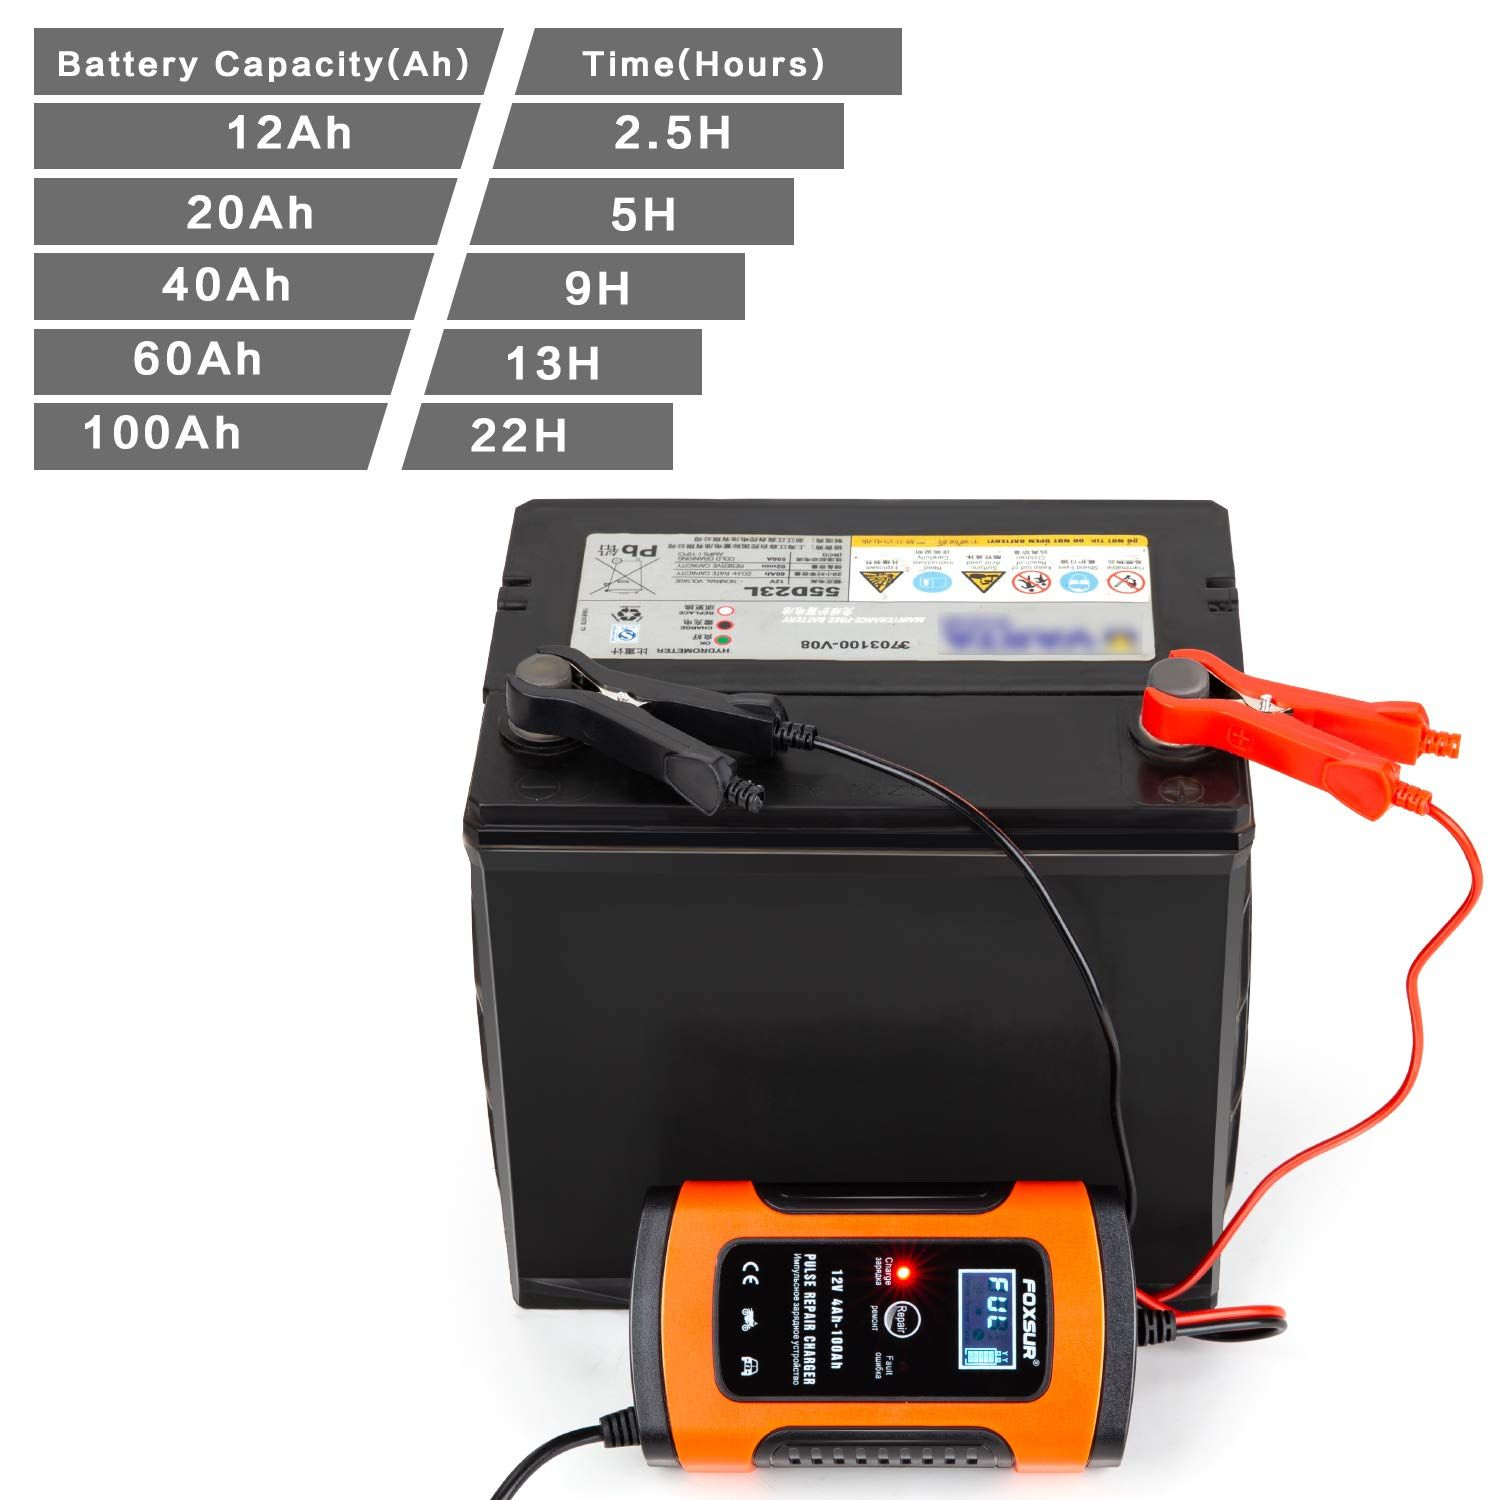 5 Amp 12v Automotive Smart Battery Charger Maintainer For Car Motorcycle Lawn Mower Boat Rv Suv Atv Battery Charger Automotive Automatic Battery Charger